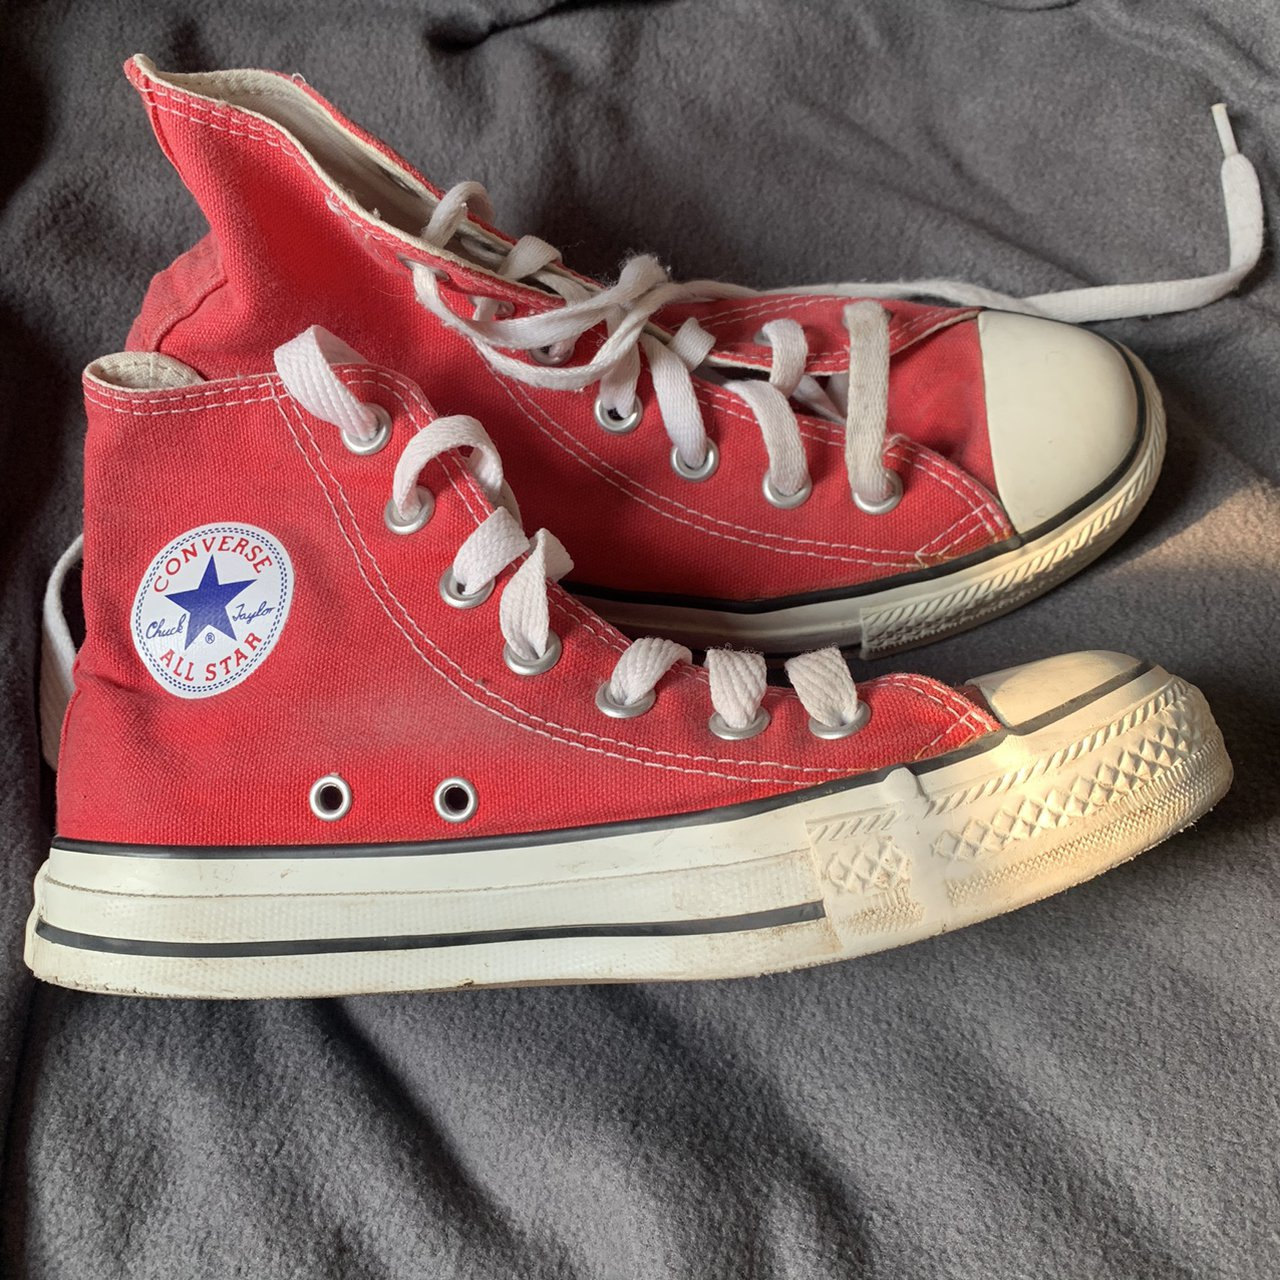 Size 3 Red Converse High Tops ❤️ Worn a